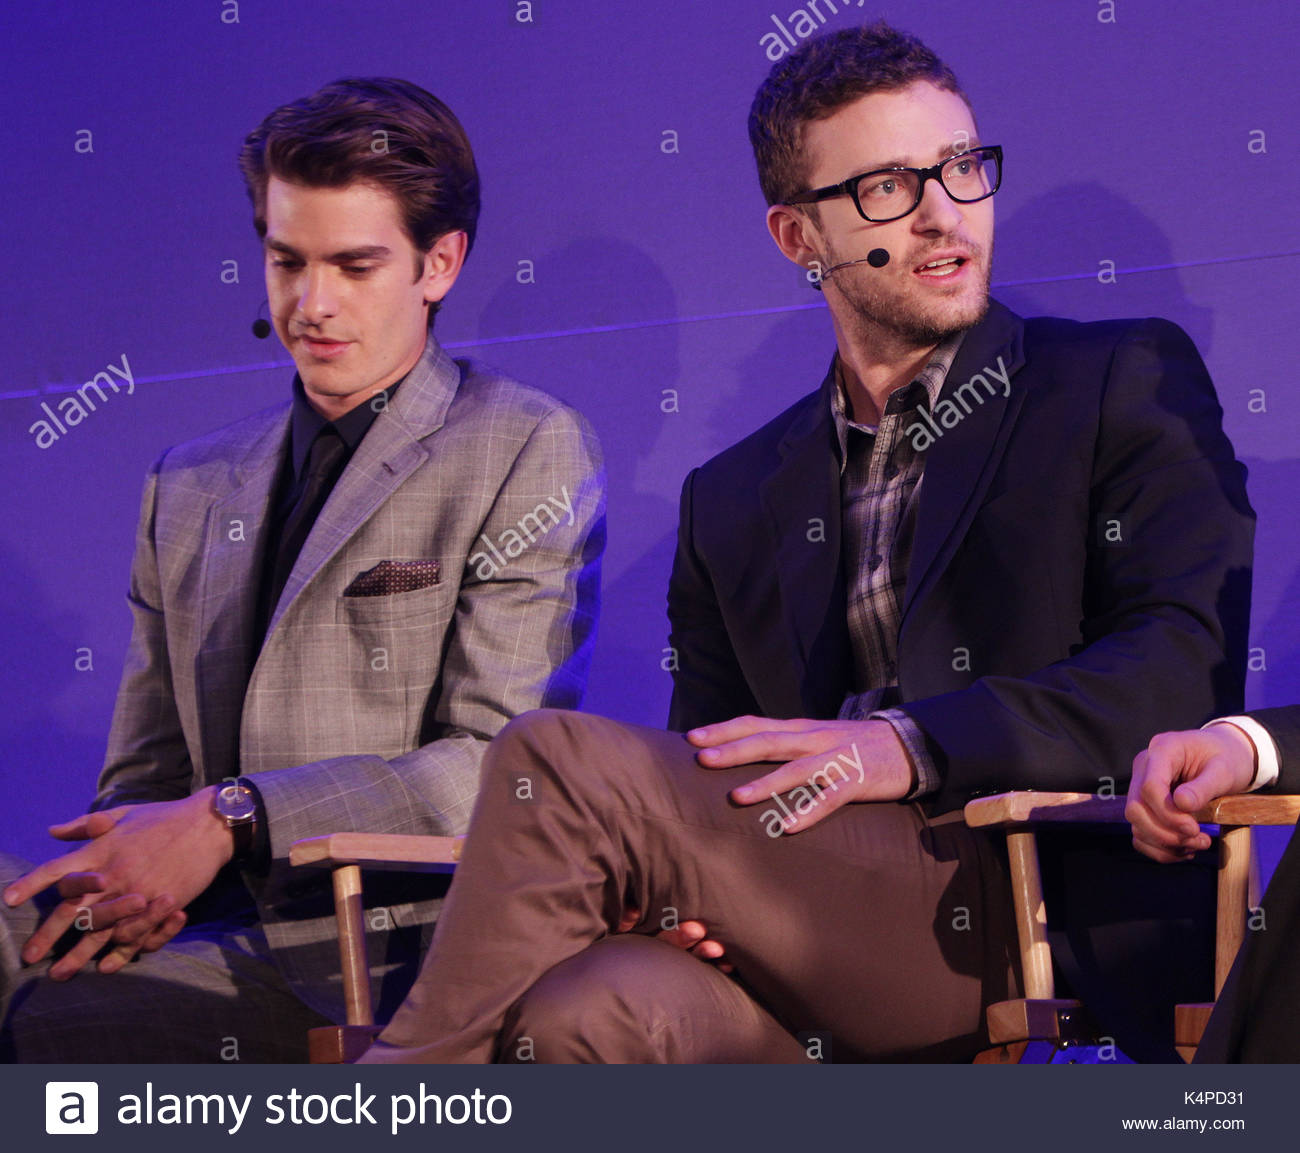 Justin timberlake and andrew garfield actors justin timberlake justin timberlake and andrew garfield actors justin timberlake jesse eisenberg and andrew garfield are seen here attending the meet the filmmakers event m4hsunfo